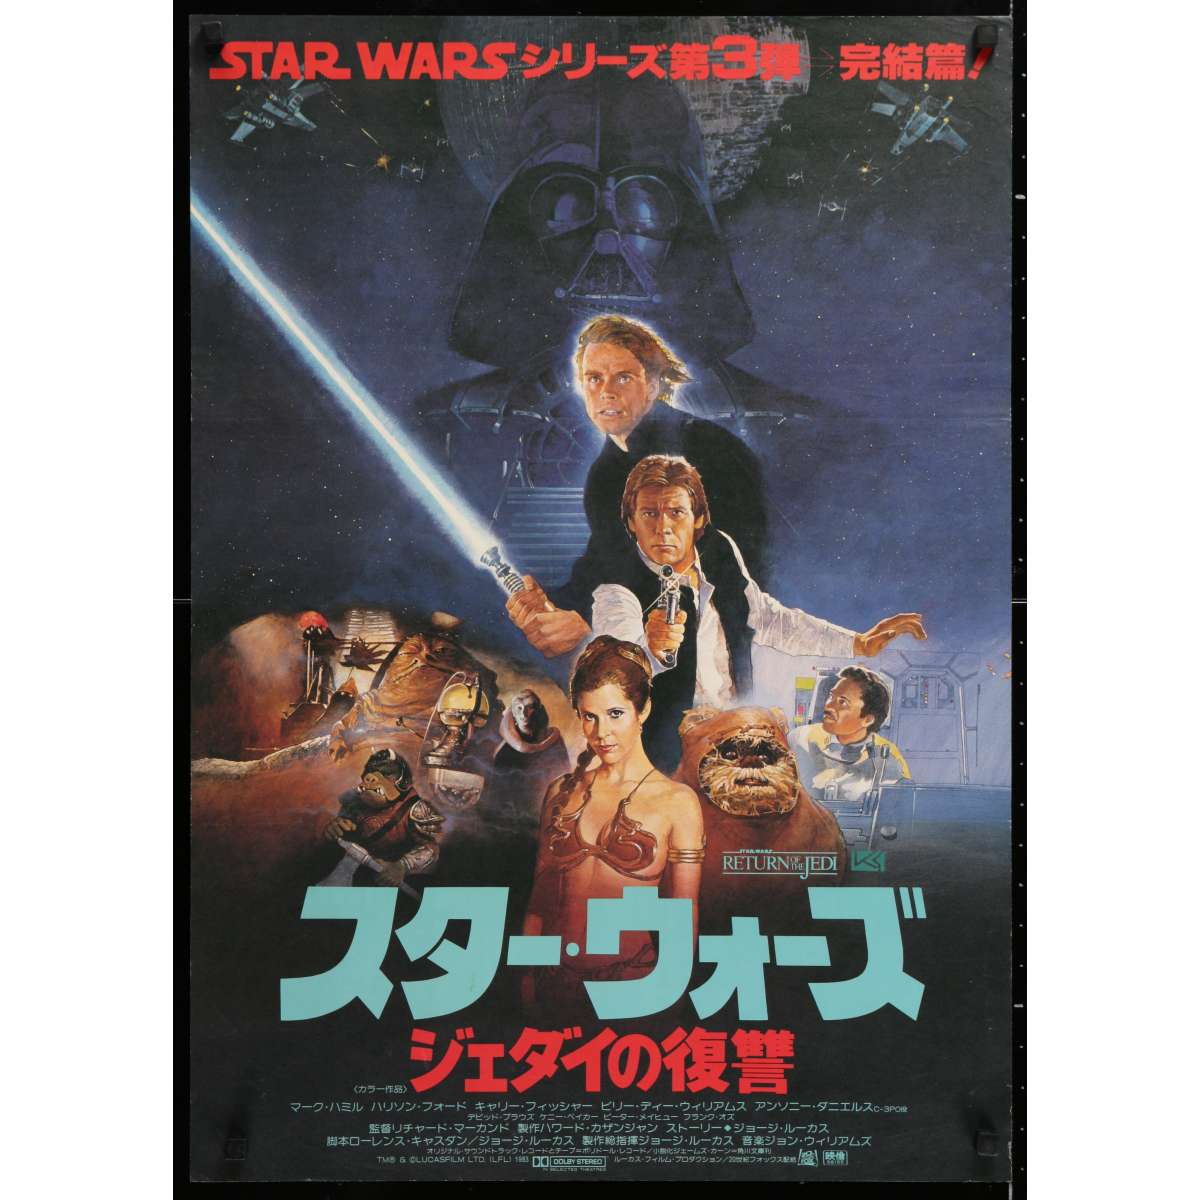 Star Wars The Return Of The Jedi Movie Poster 20x28 In